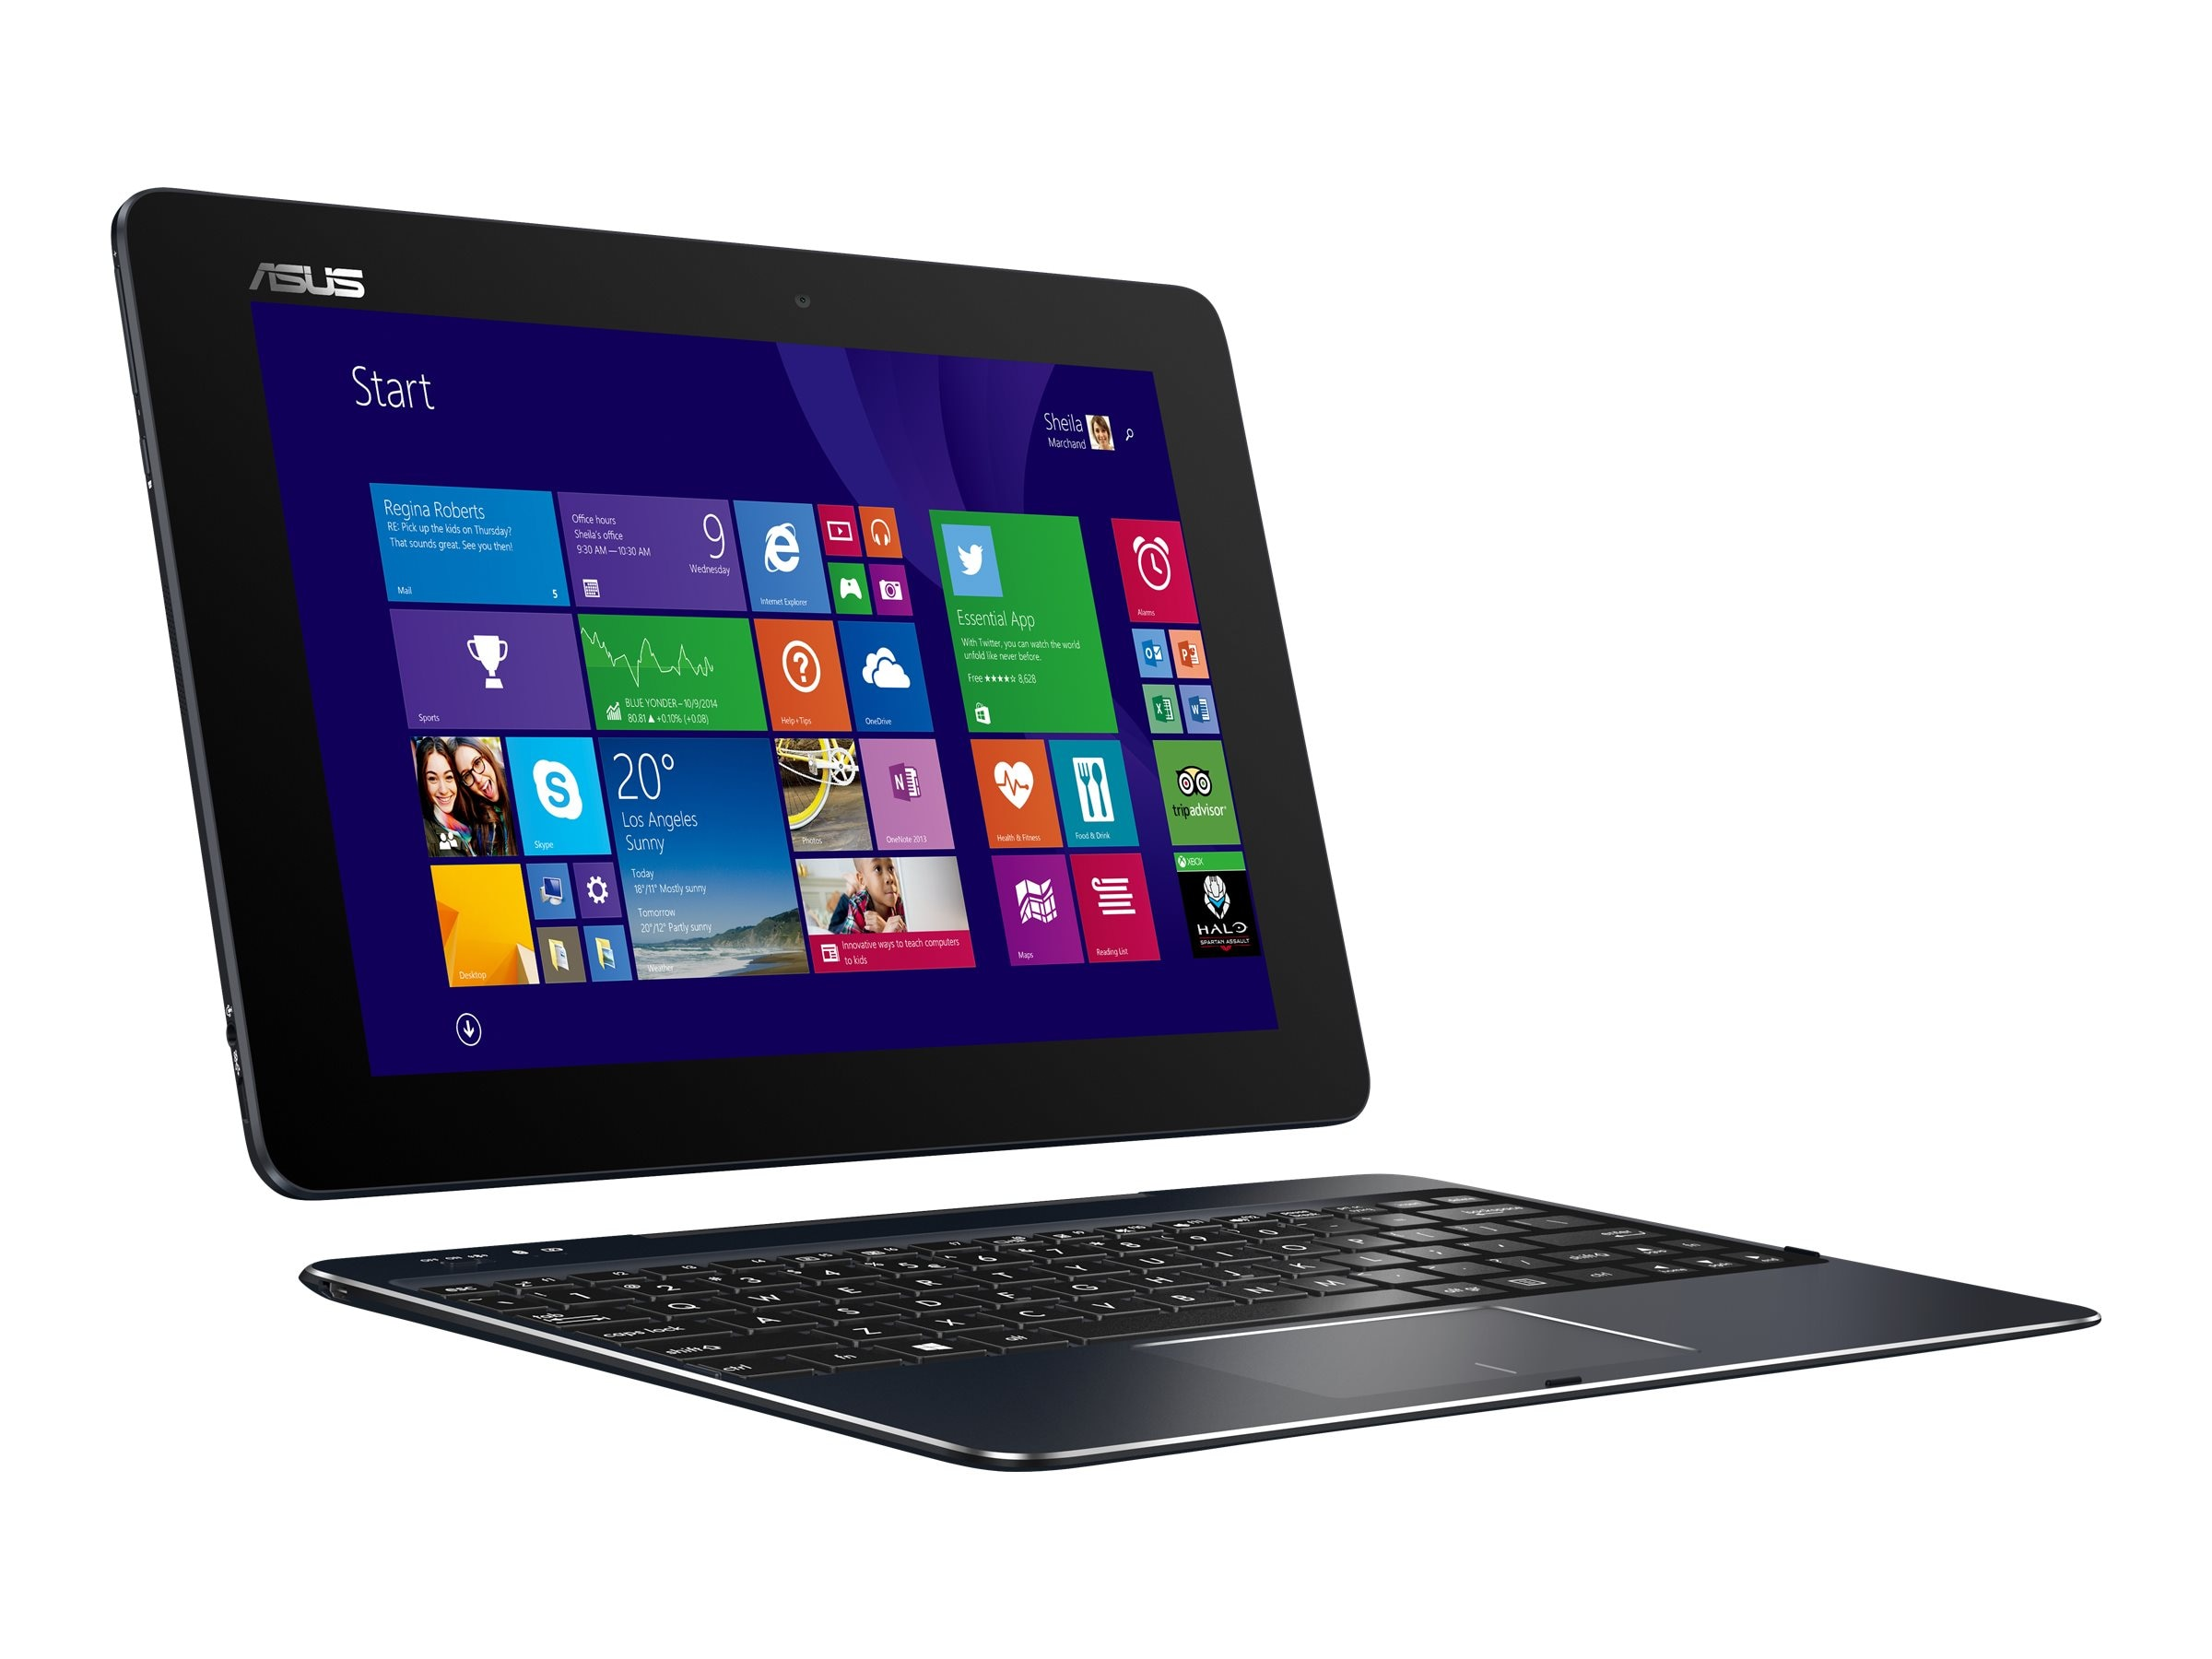 Asus Transformer Book T100HA-C4 Atom x5-Z8500 4GB 64GB SSD 10.1 W10H Gray, T100HA-C4-GR